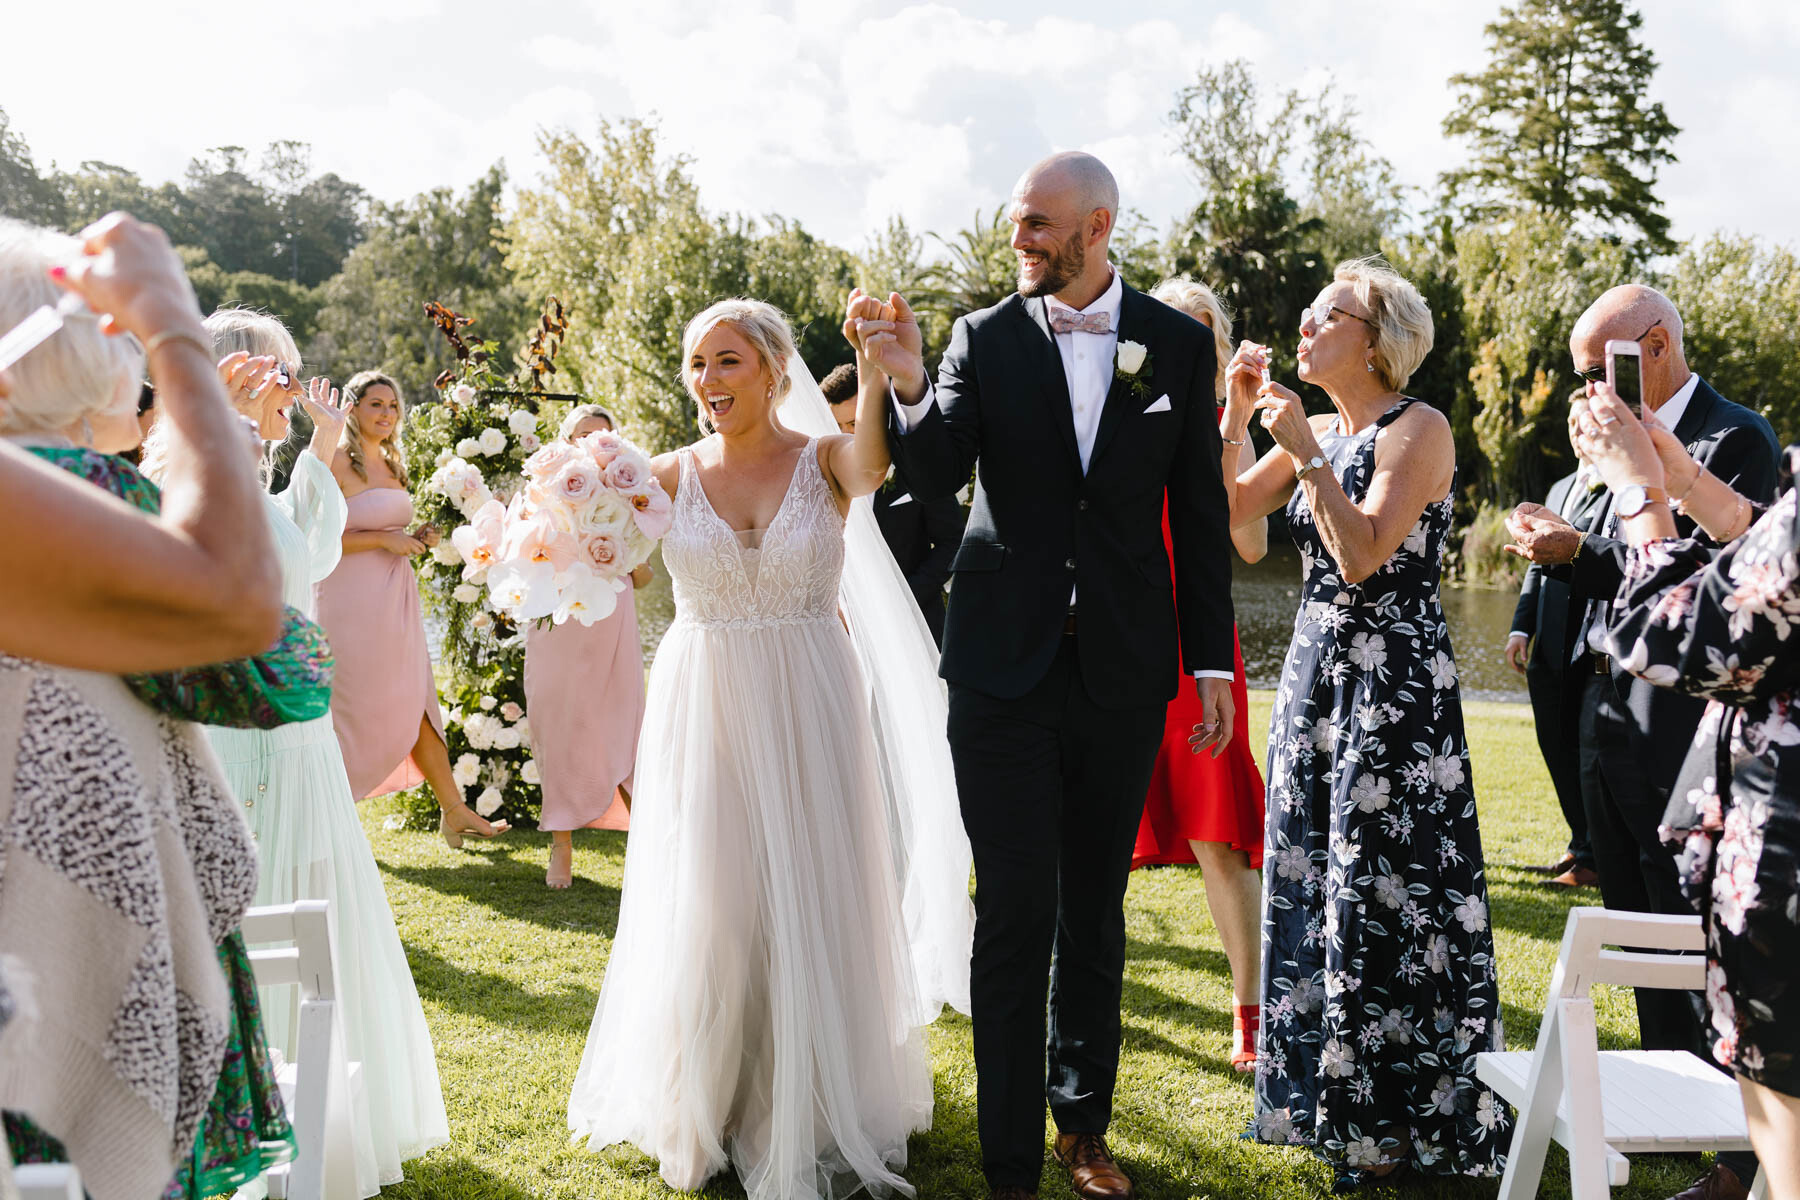 Do I need two photographers for my wedding?